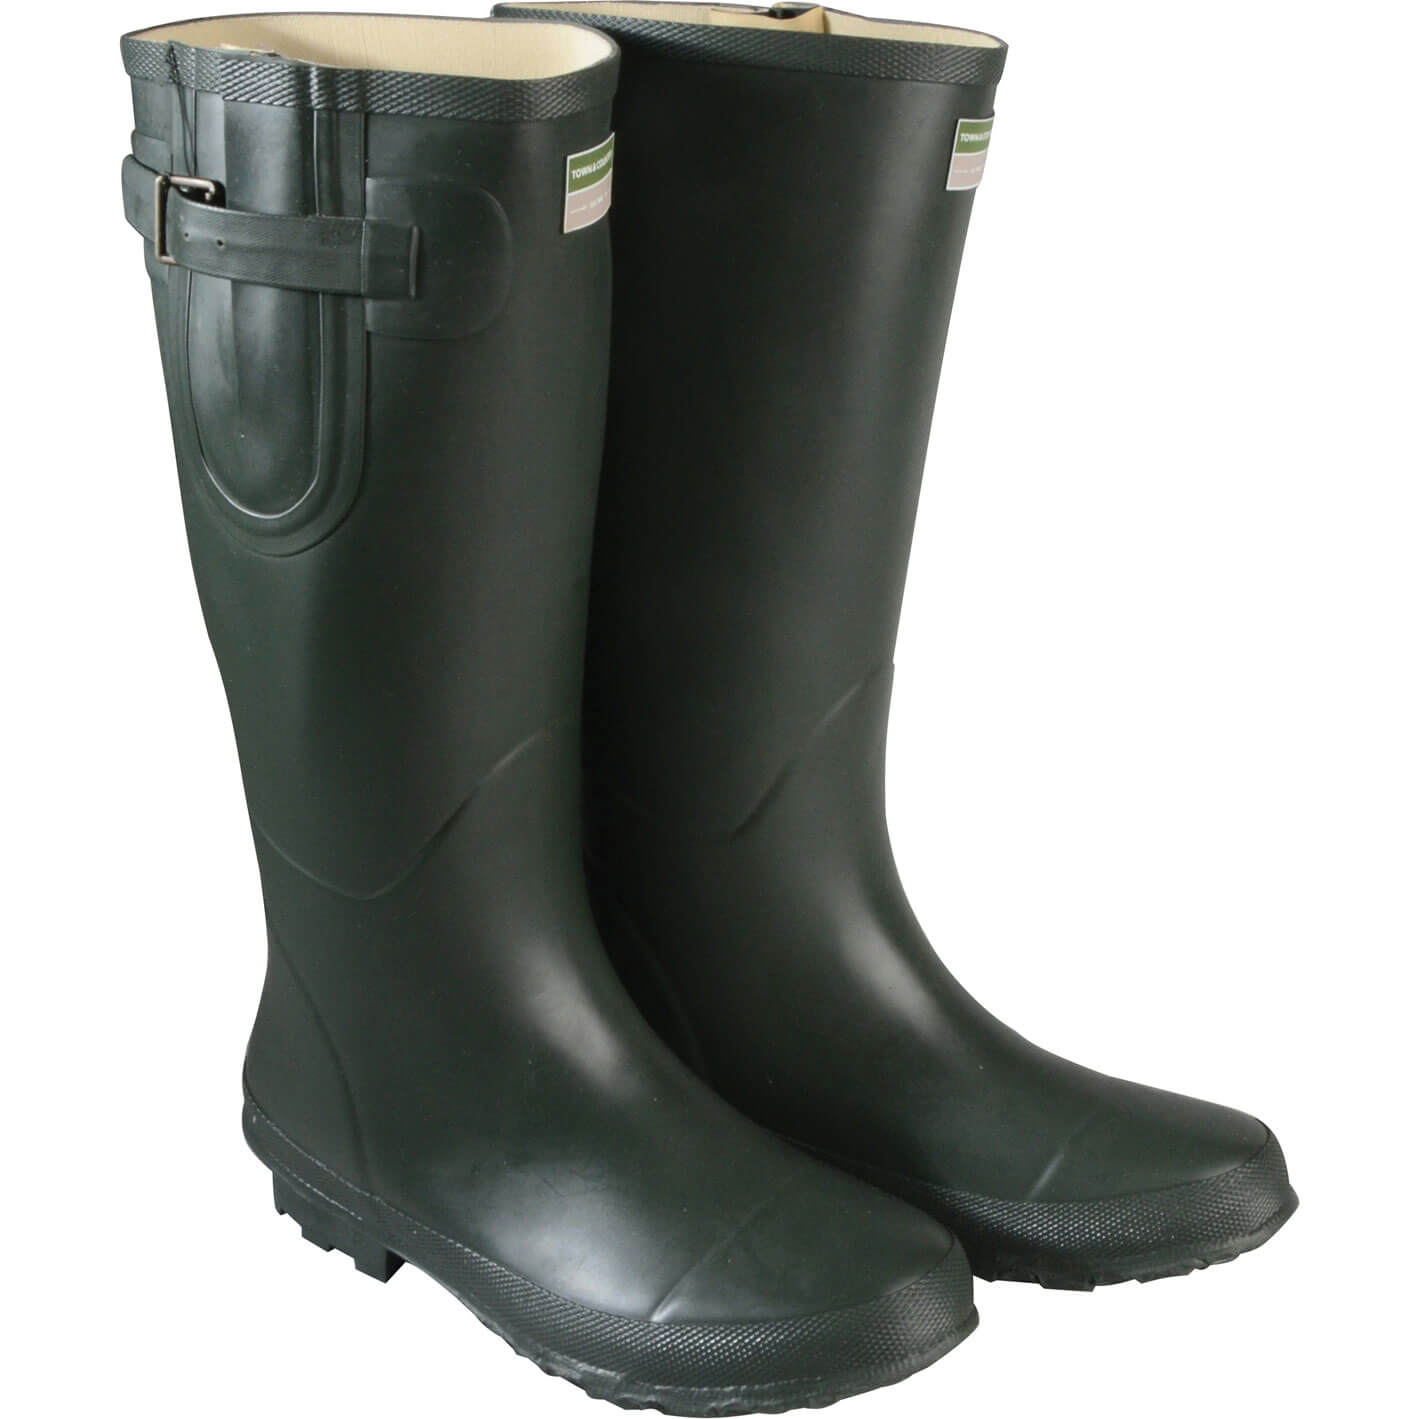 Image of Town & Country Bosworth Wellington Boots Green Size 10